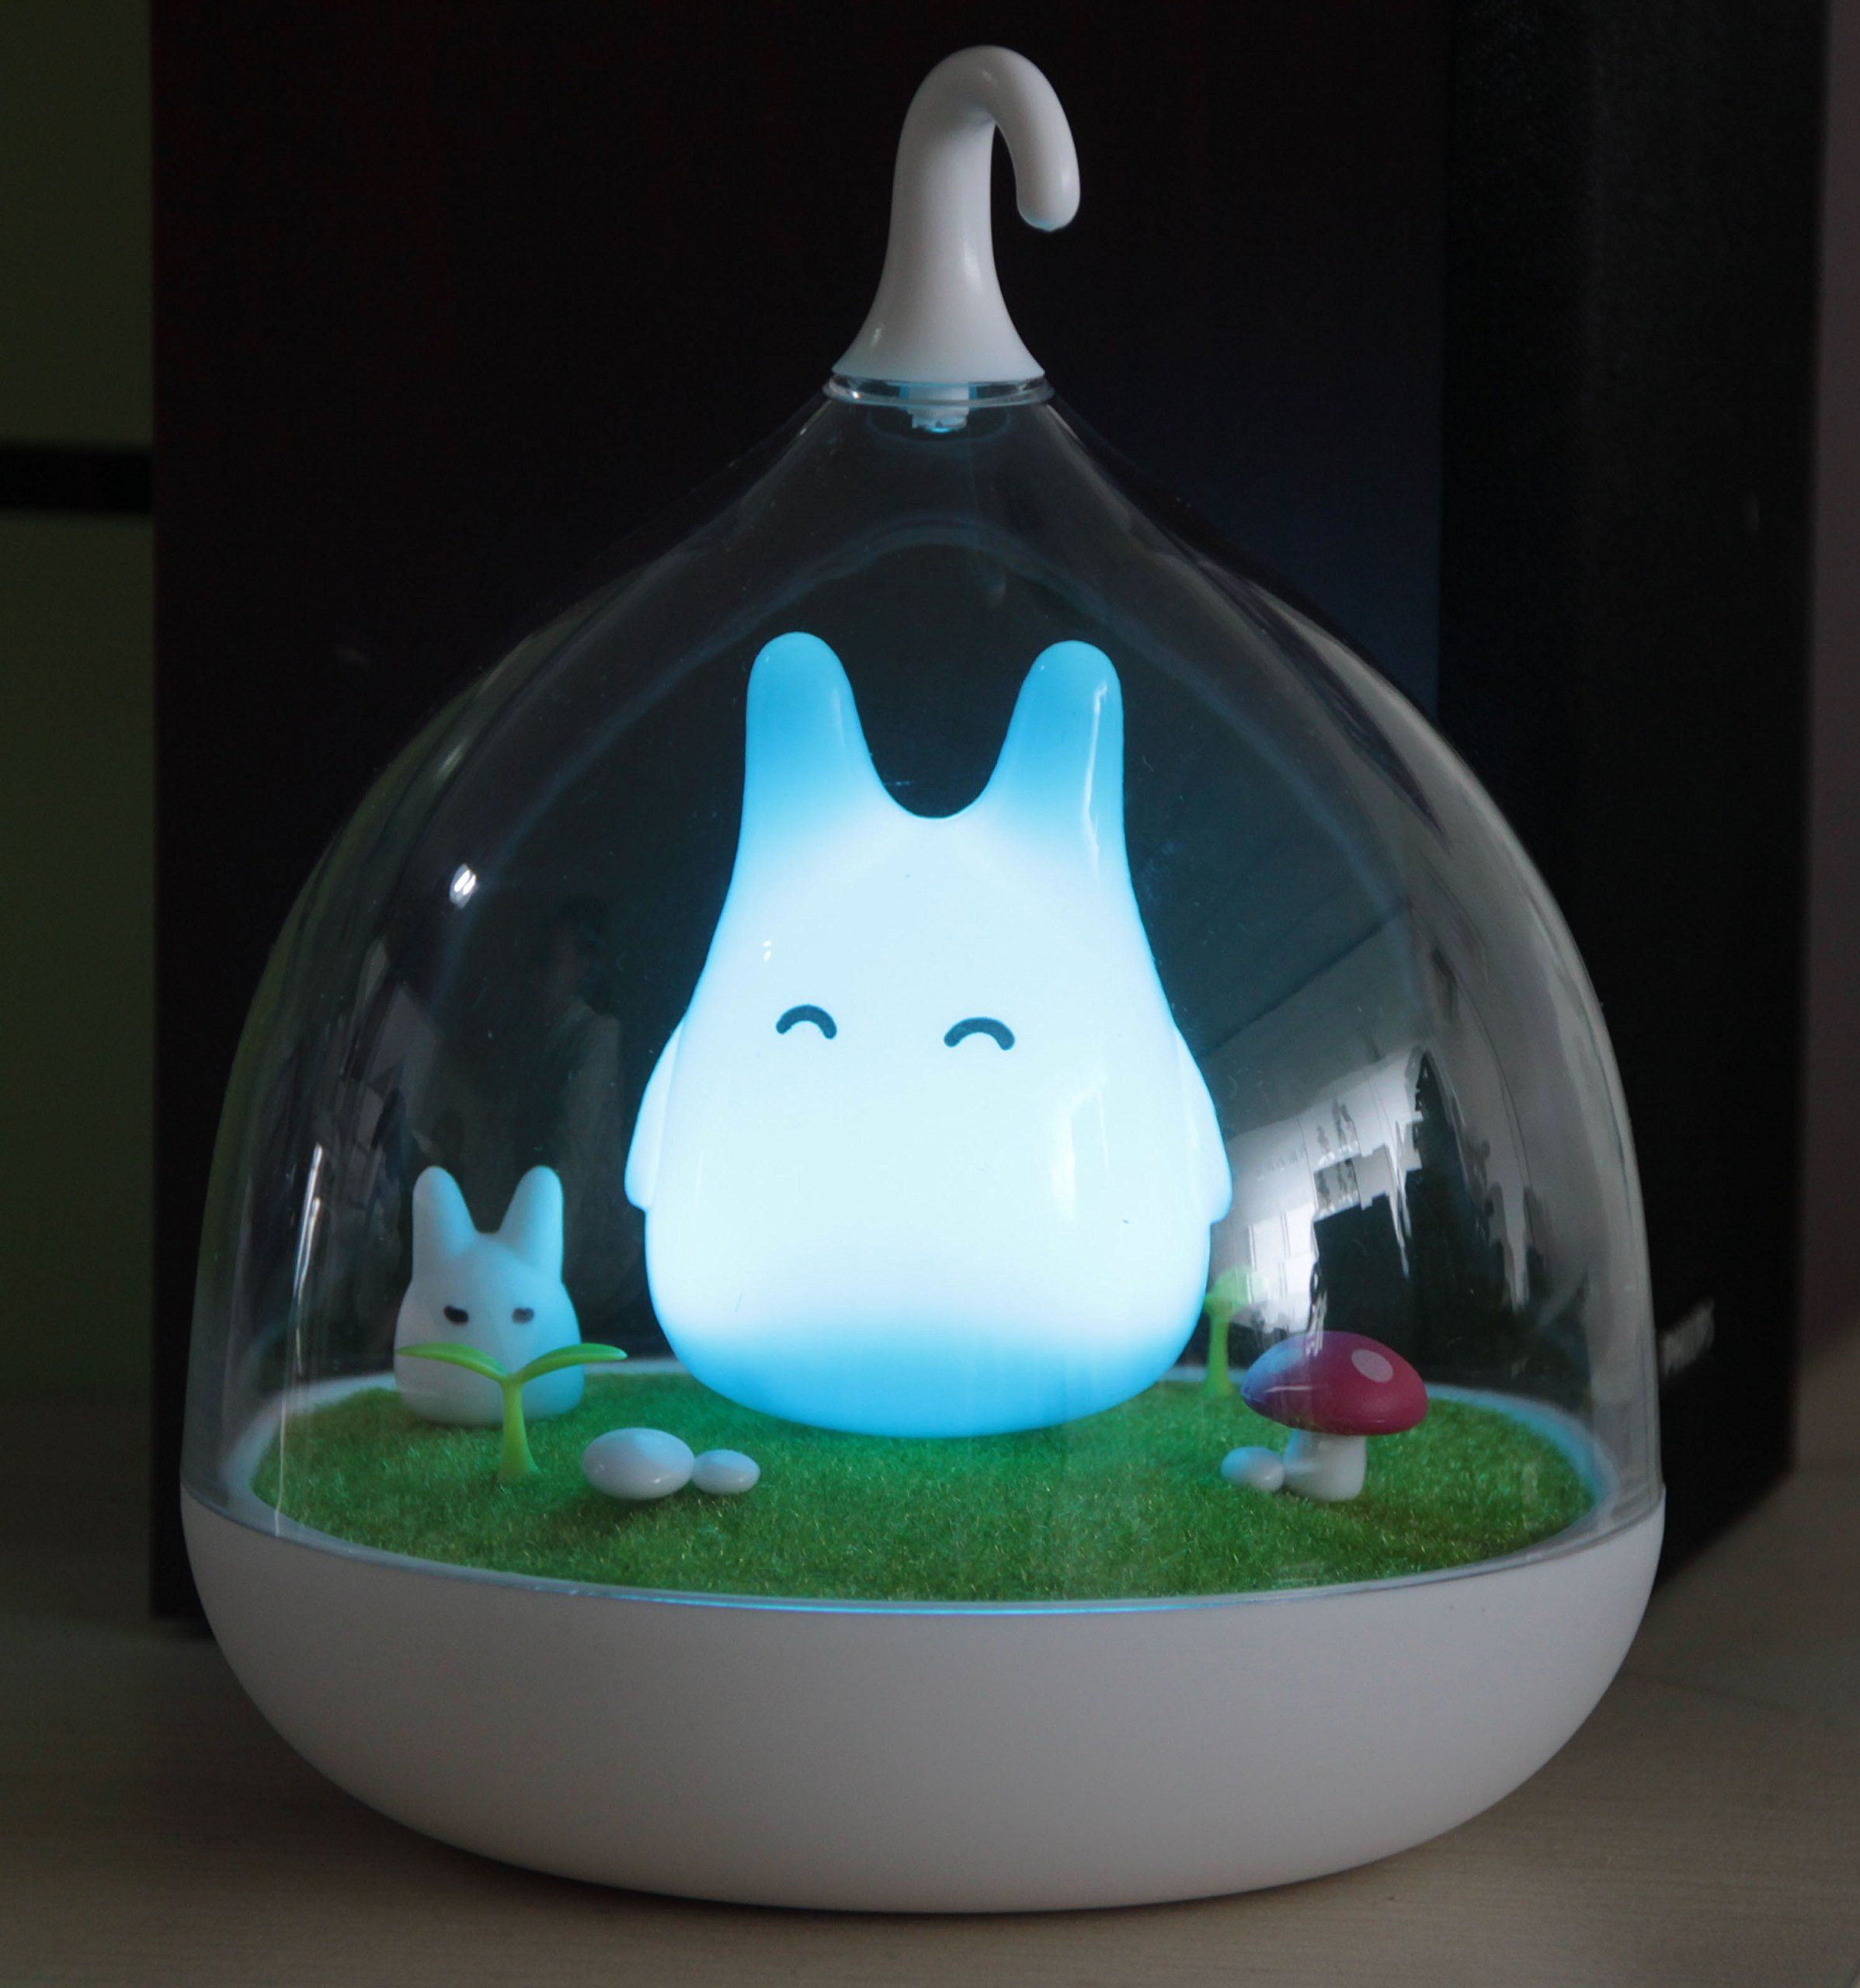 Night lights designs - Ohlees Children S Night Lights Hand Held Design Touch Sensor Vibration Birdcage Lamp Totoro Night